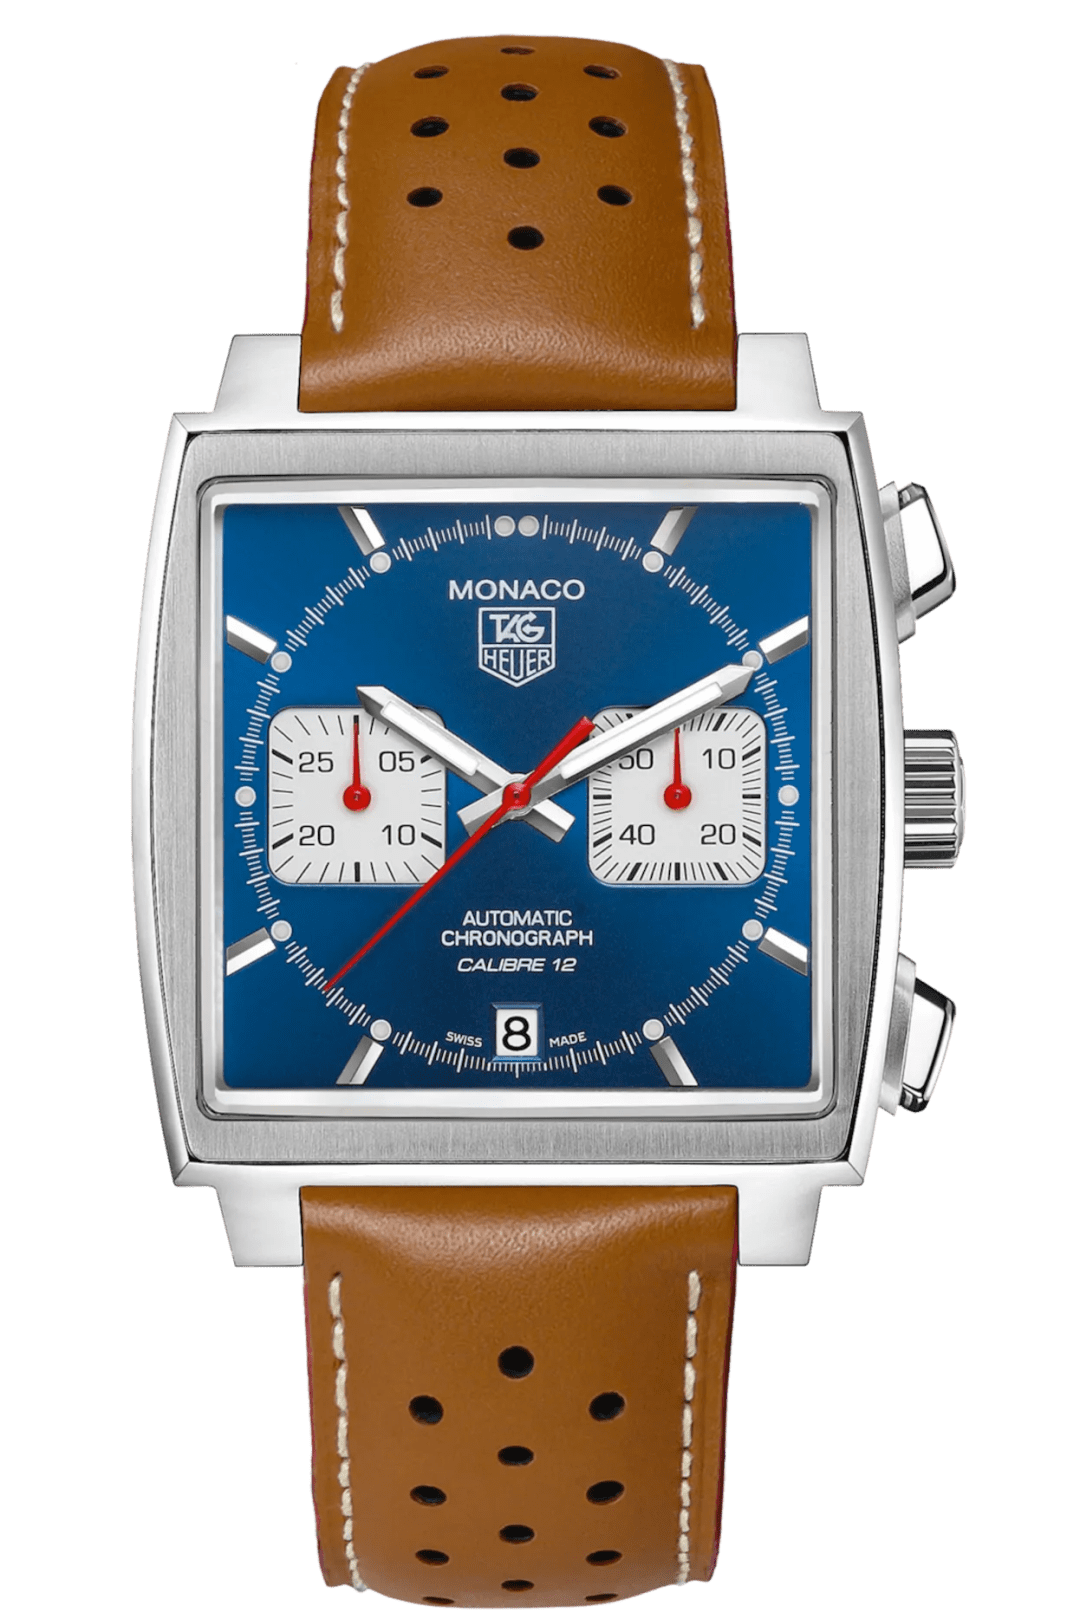 A silver and blue watch